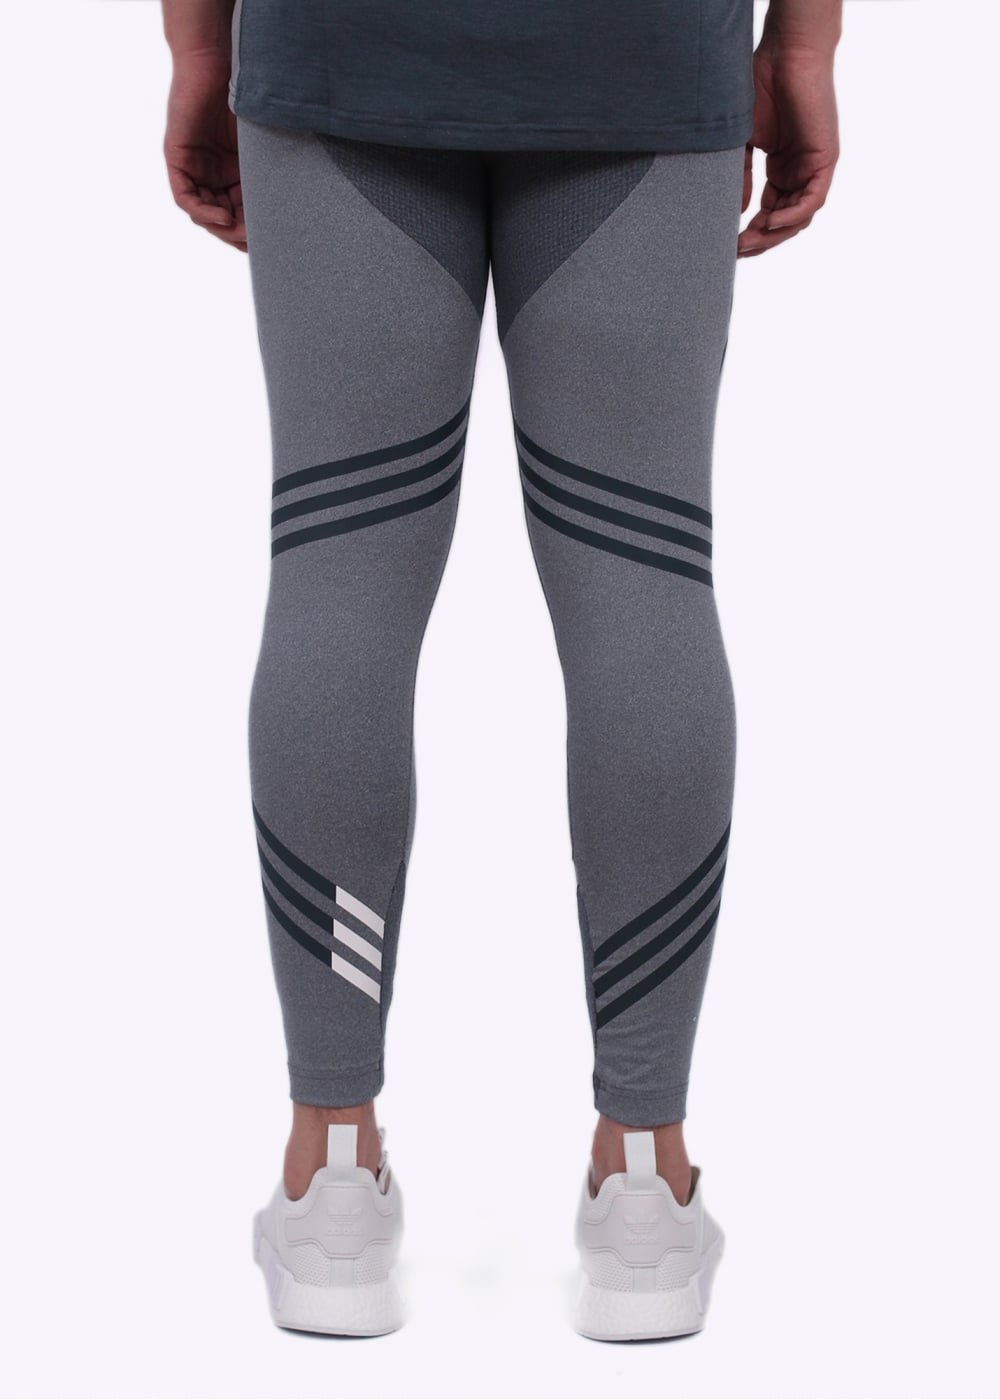 adidas Originals x White Mountaineering Knit Tights